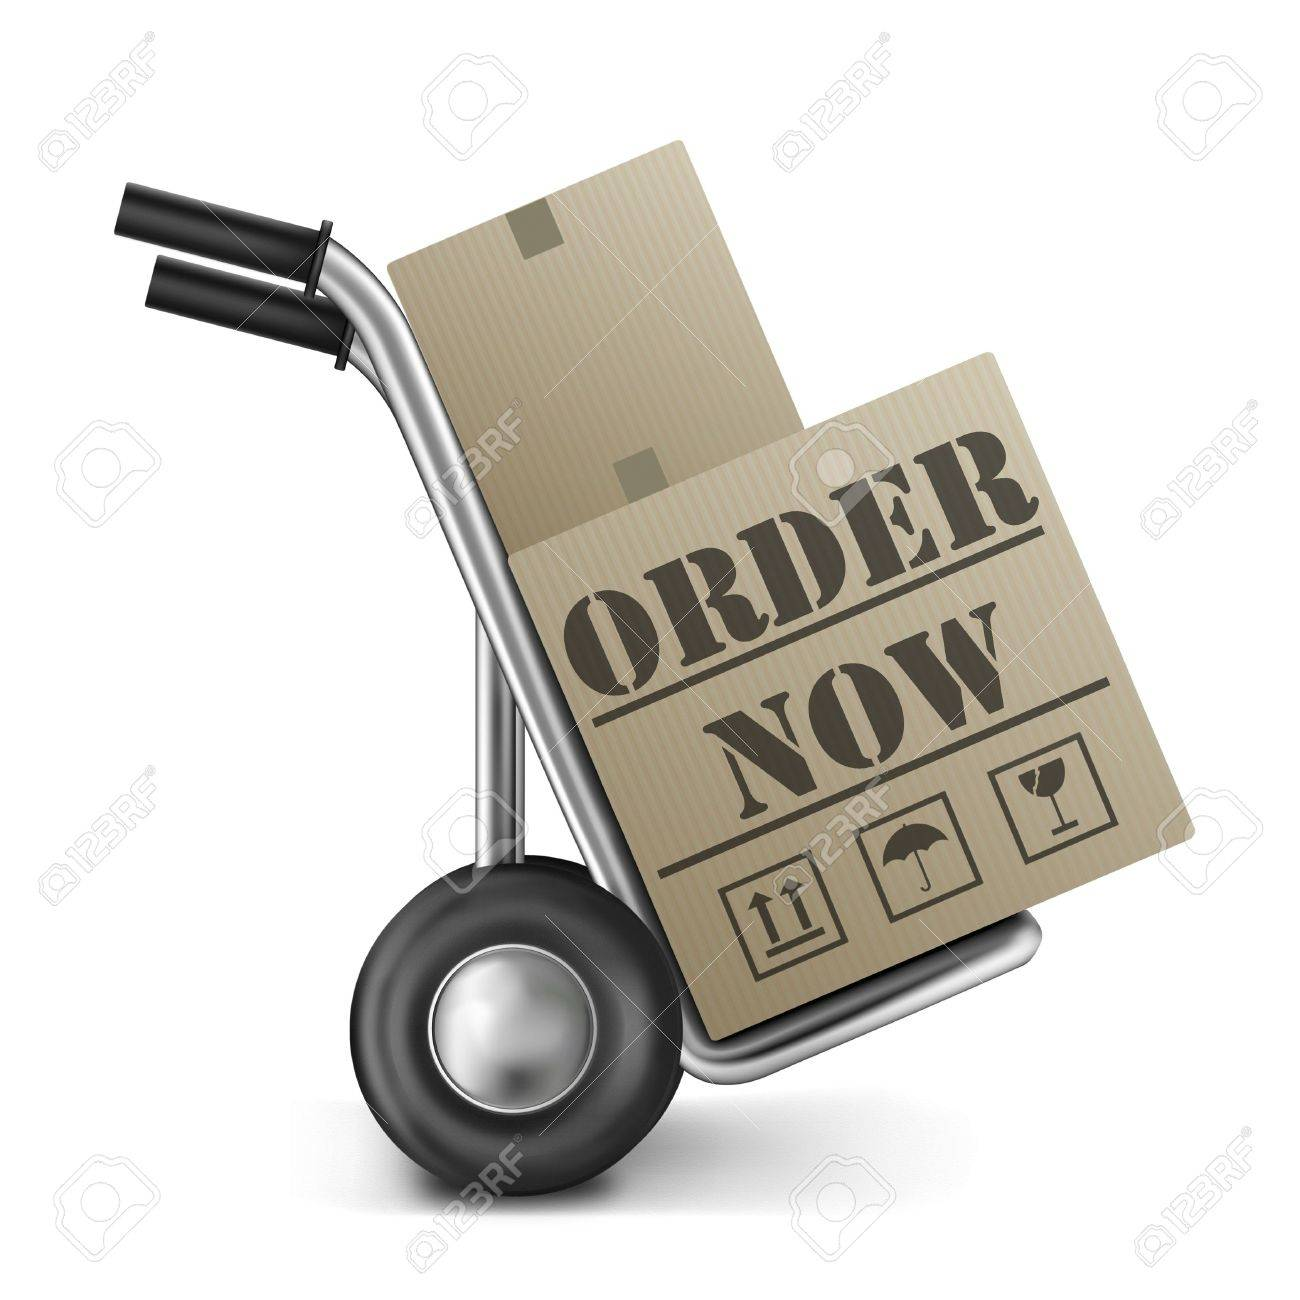 order now buying on online web shop placing orders on internet shop cardboard box on trolley or cart button or icon Stock Photo - 11289461